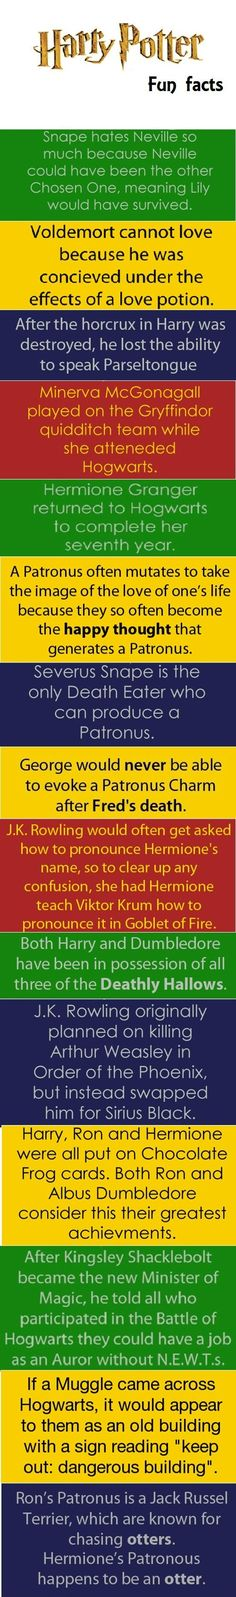 harry potter stuff- Reason to check out every dangerous, abandoned building.